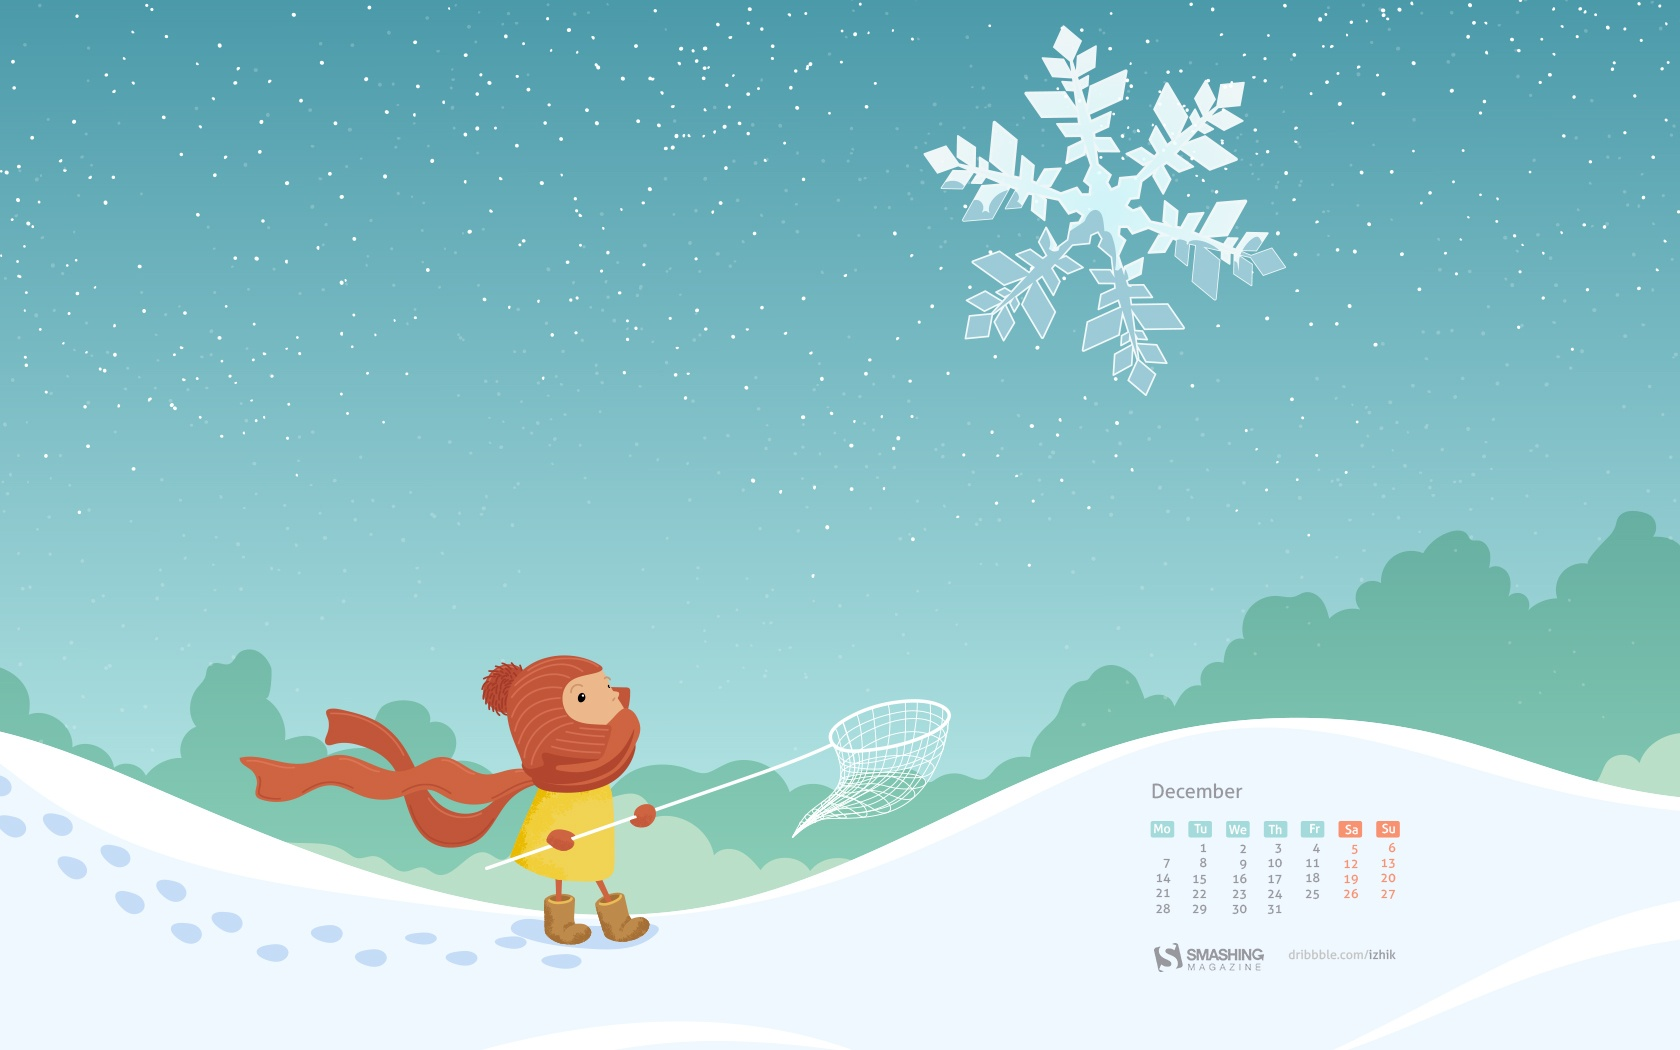 Month calendar Christmas desktop wallpaper 52522